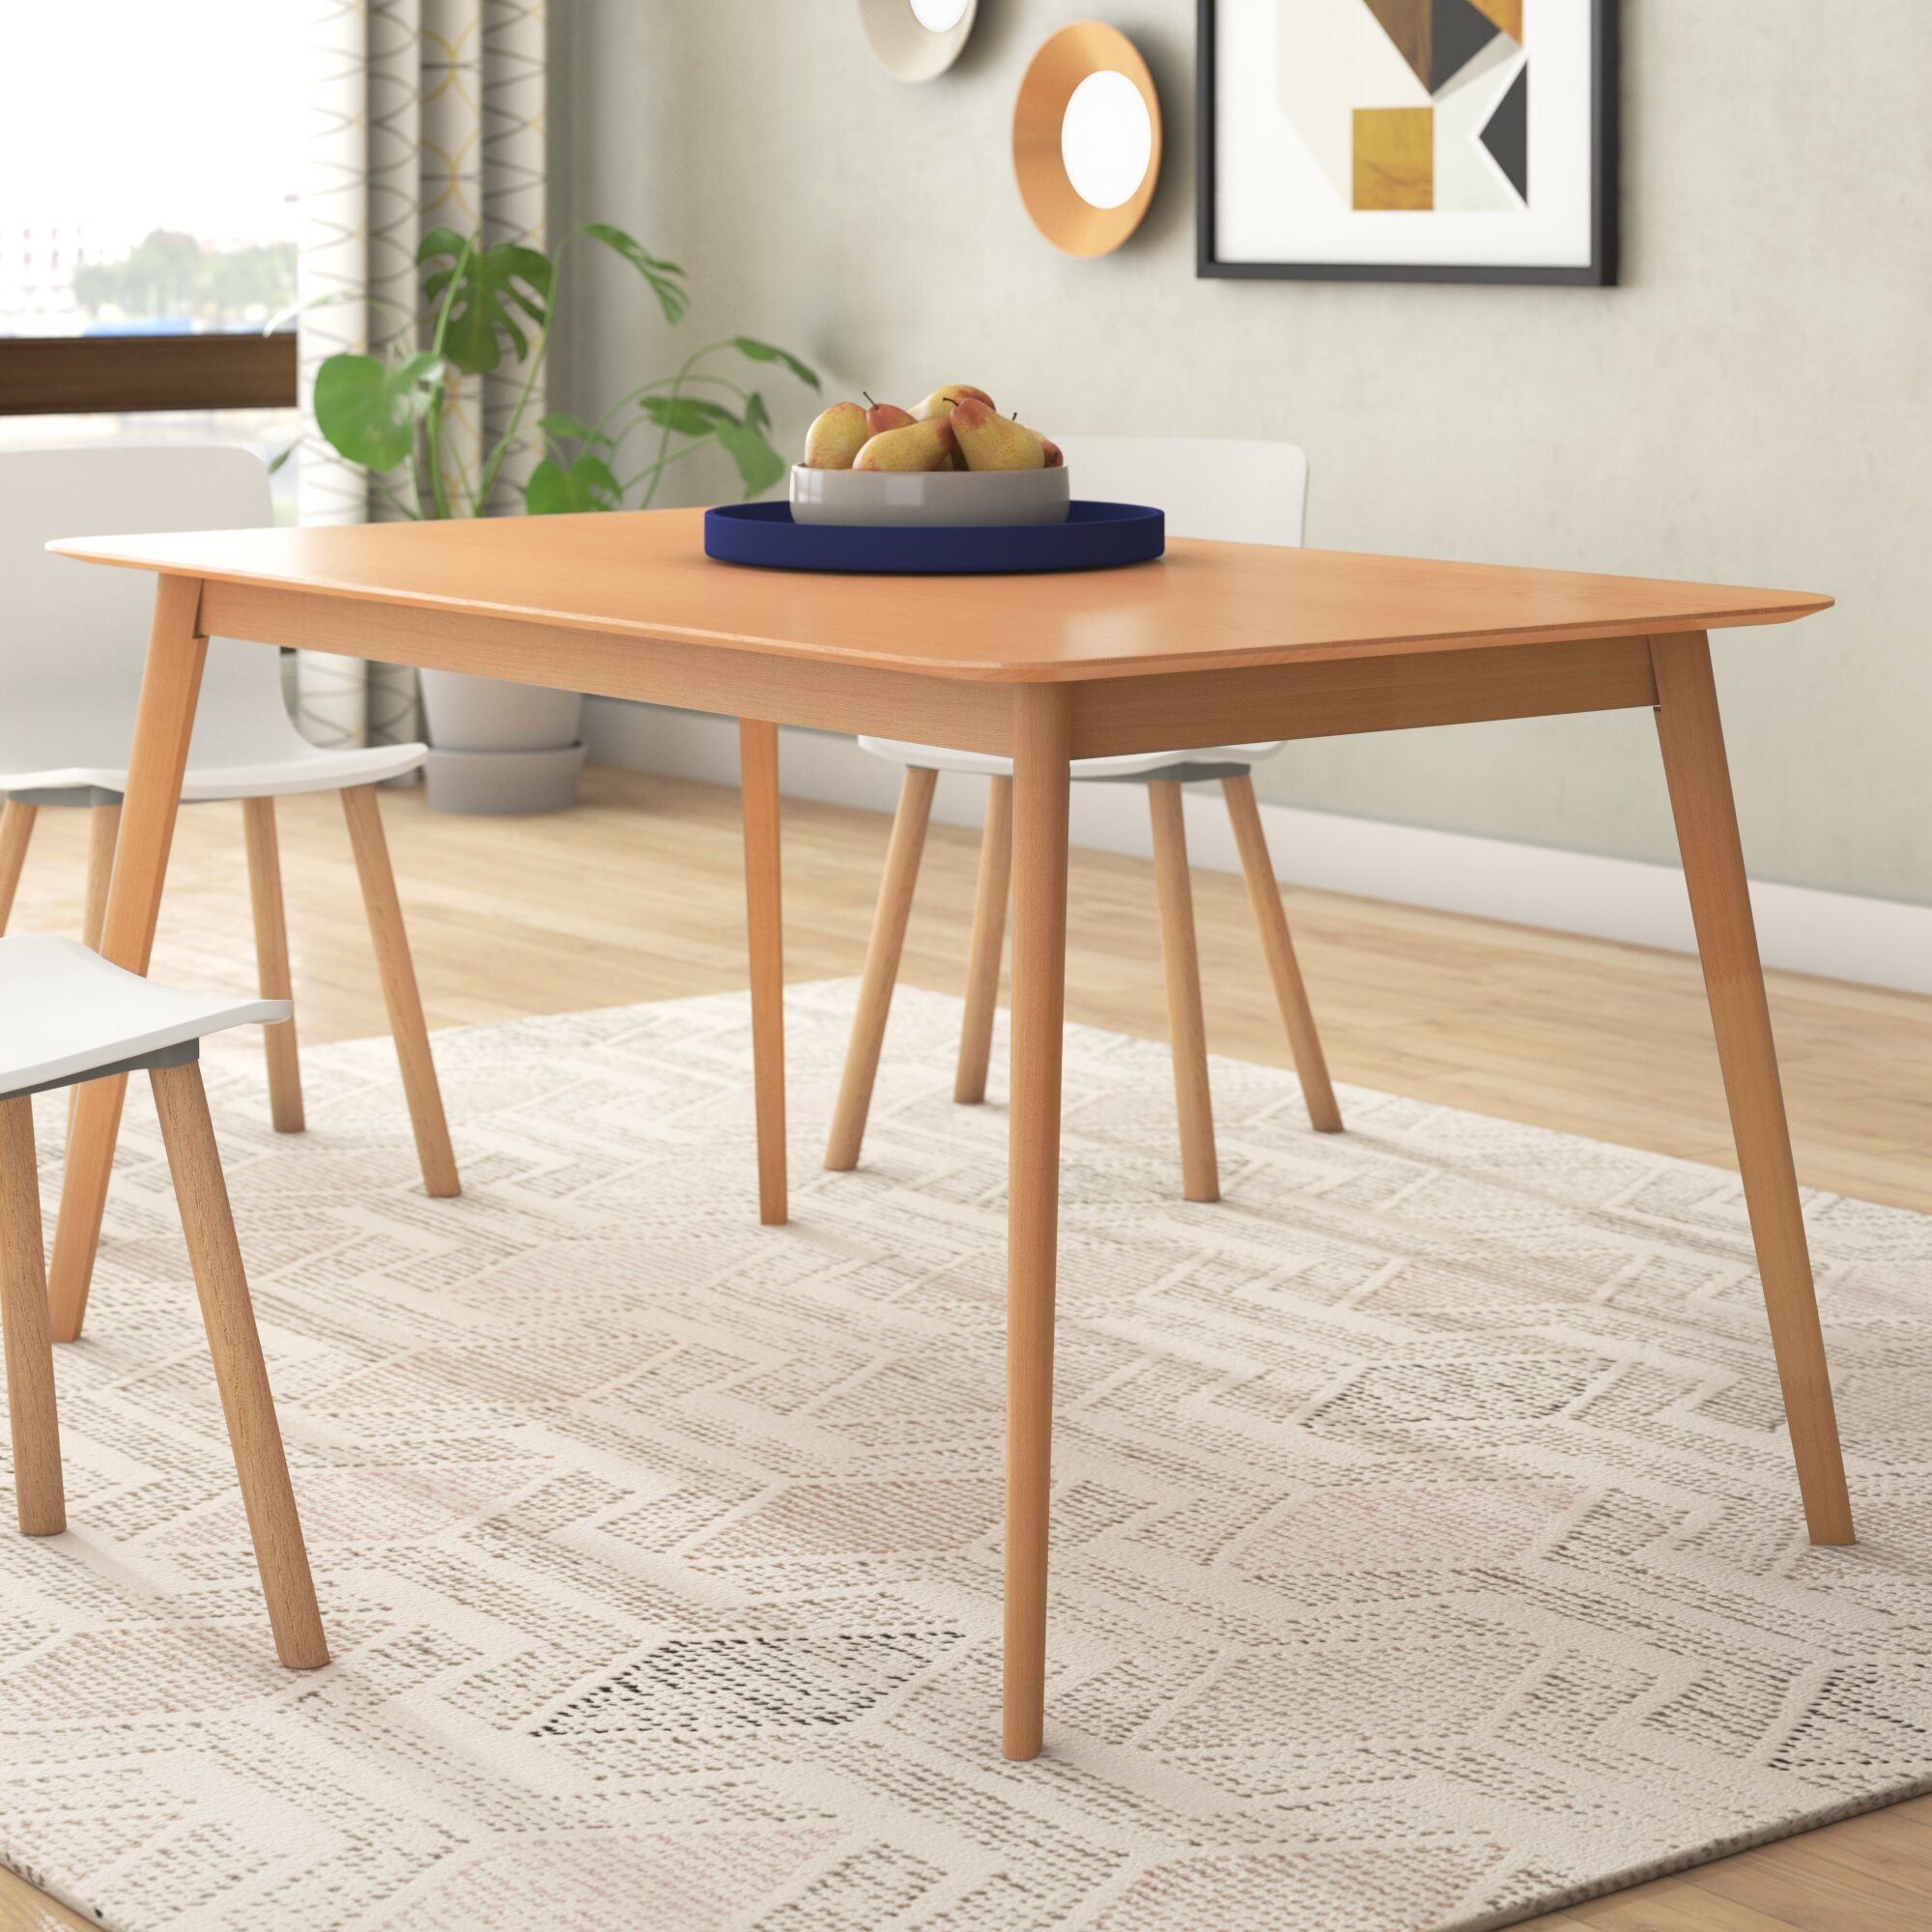 38f6e22d493 Langley Street Memphis Dining Table   Reviews